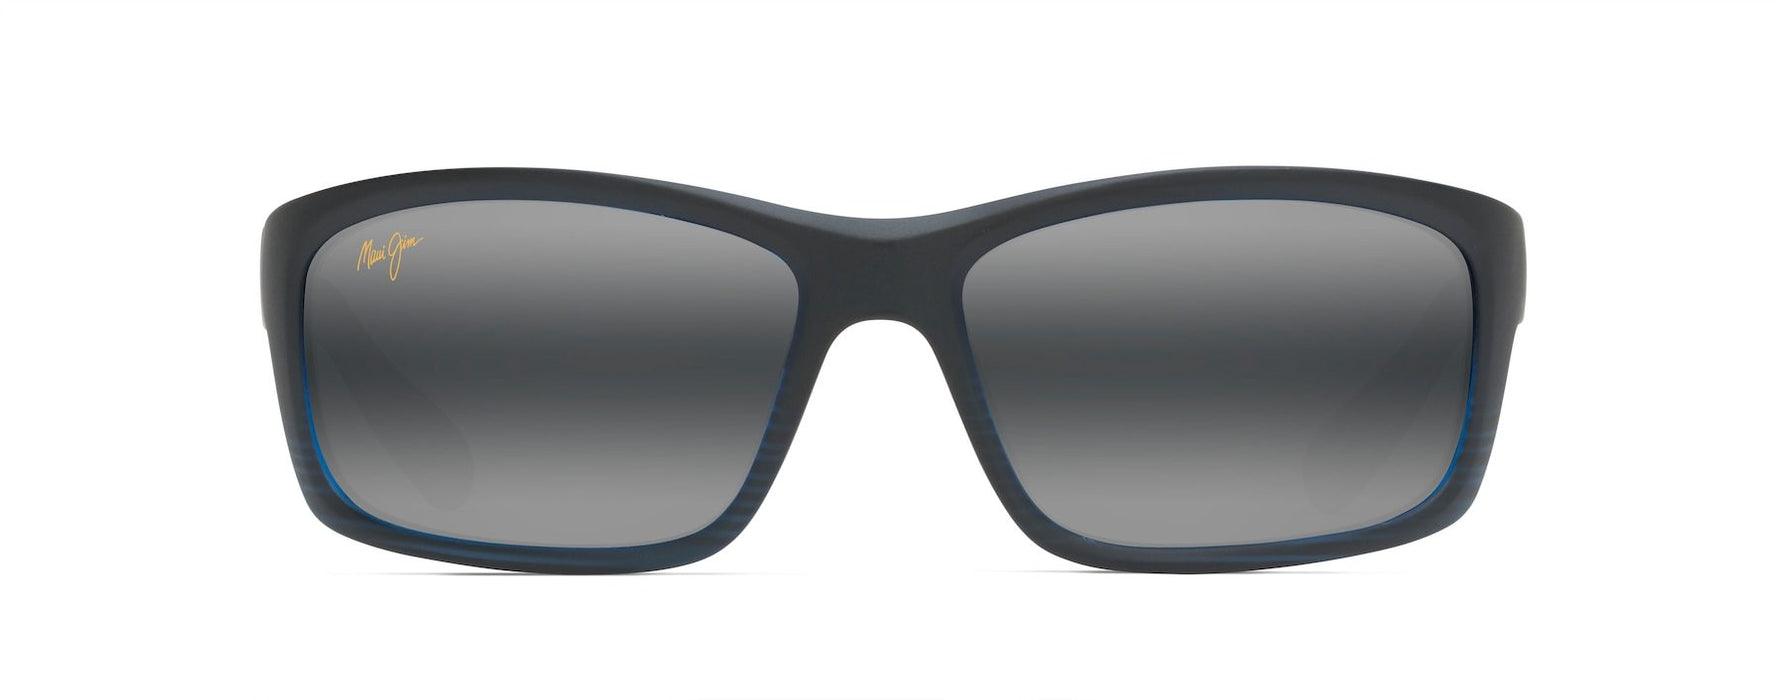 MyMaui Kanaio Coast MM766-004 Sunglasses